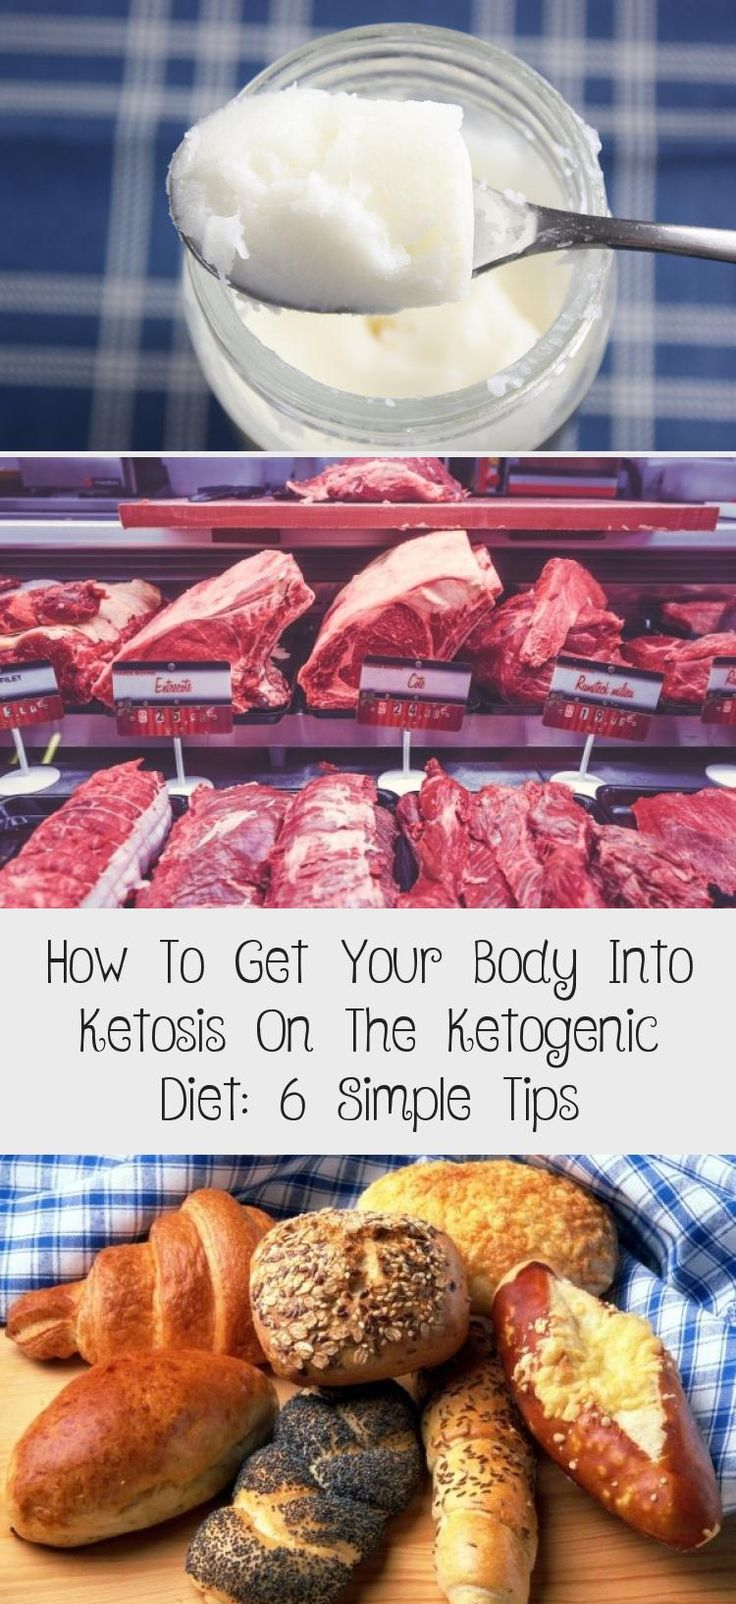 How To Get Your Body Into Ketosis On The Ketogenic Diet 6